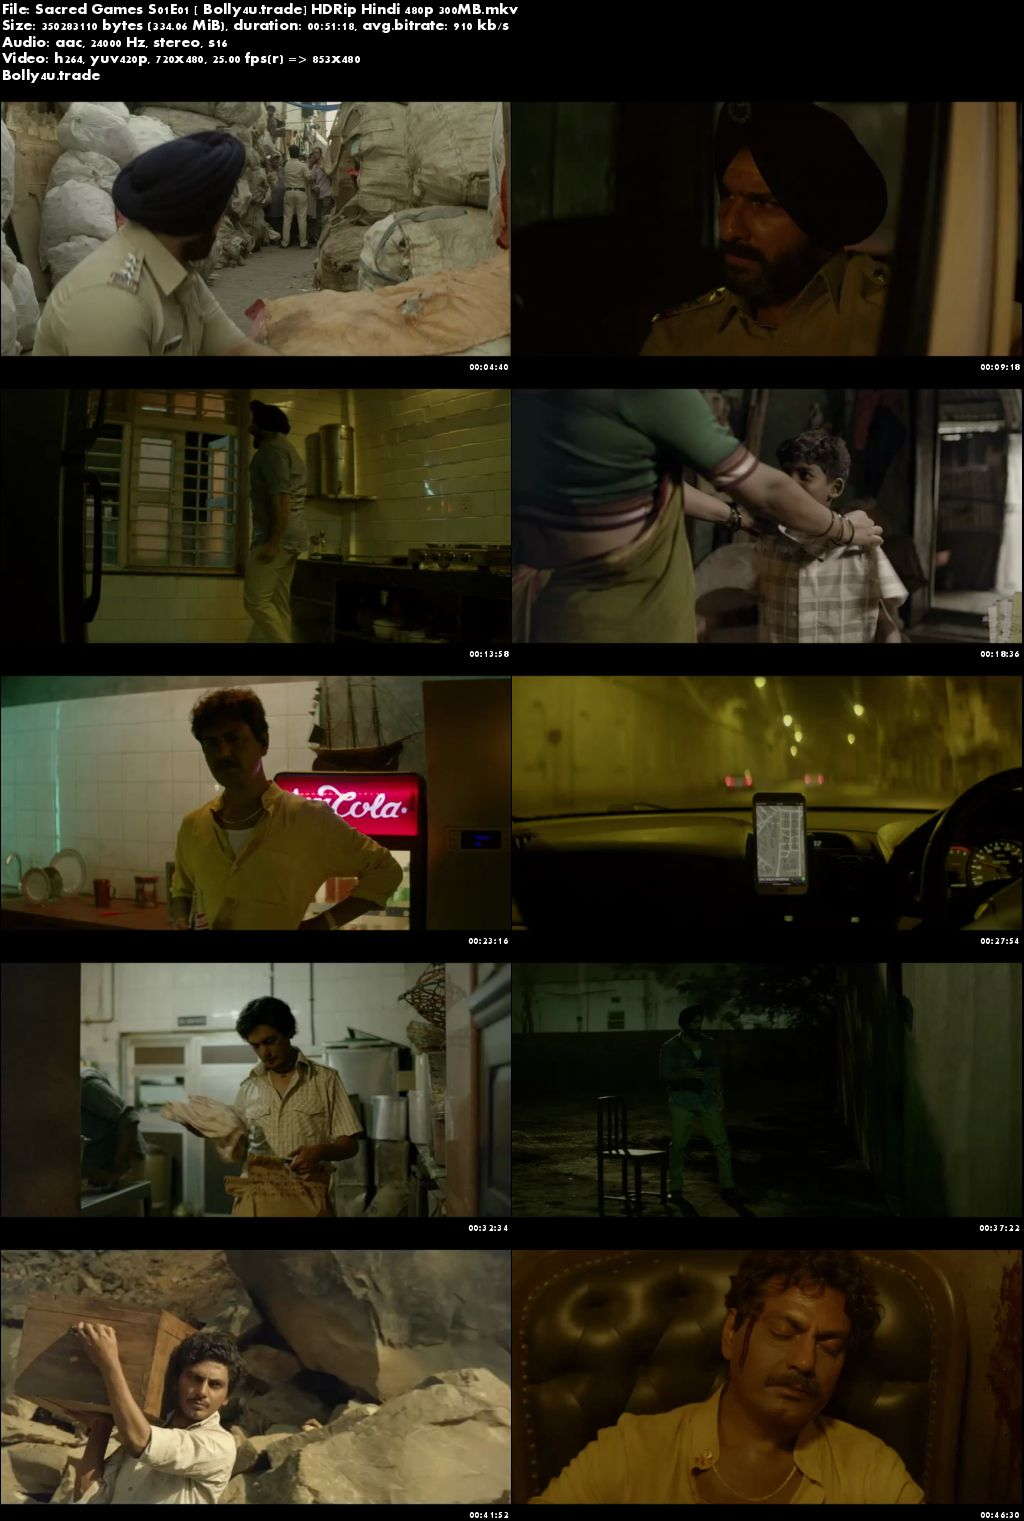 Sacred Games 2018 S01E01 HDRip 300MB Hindi 480p Download